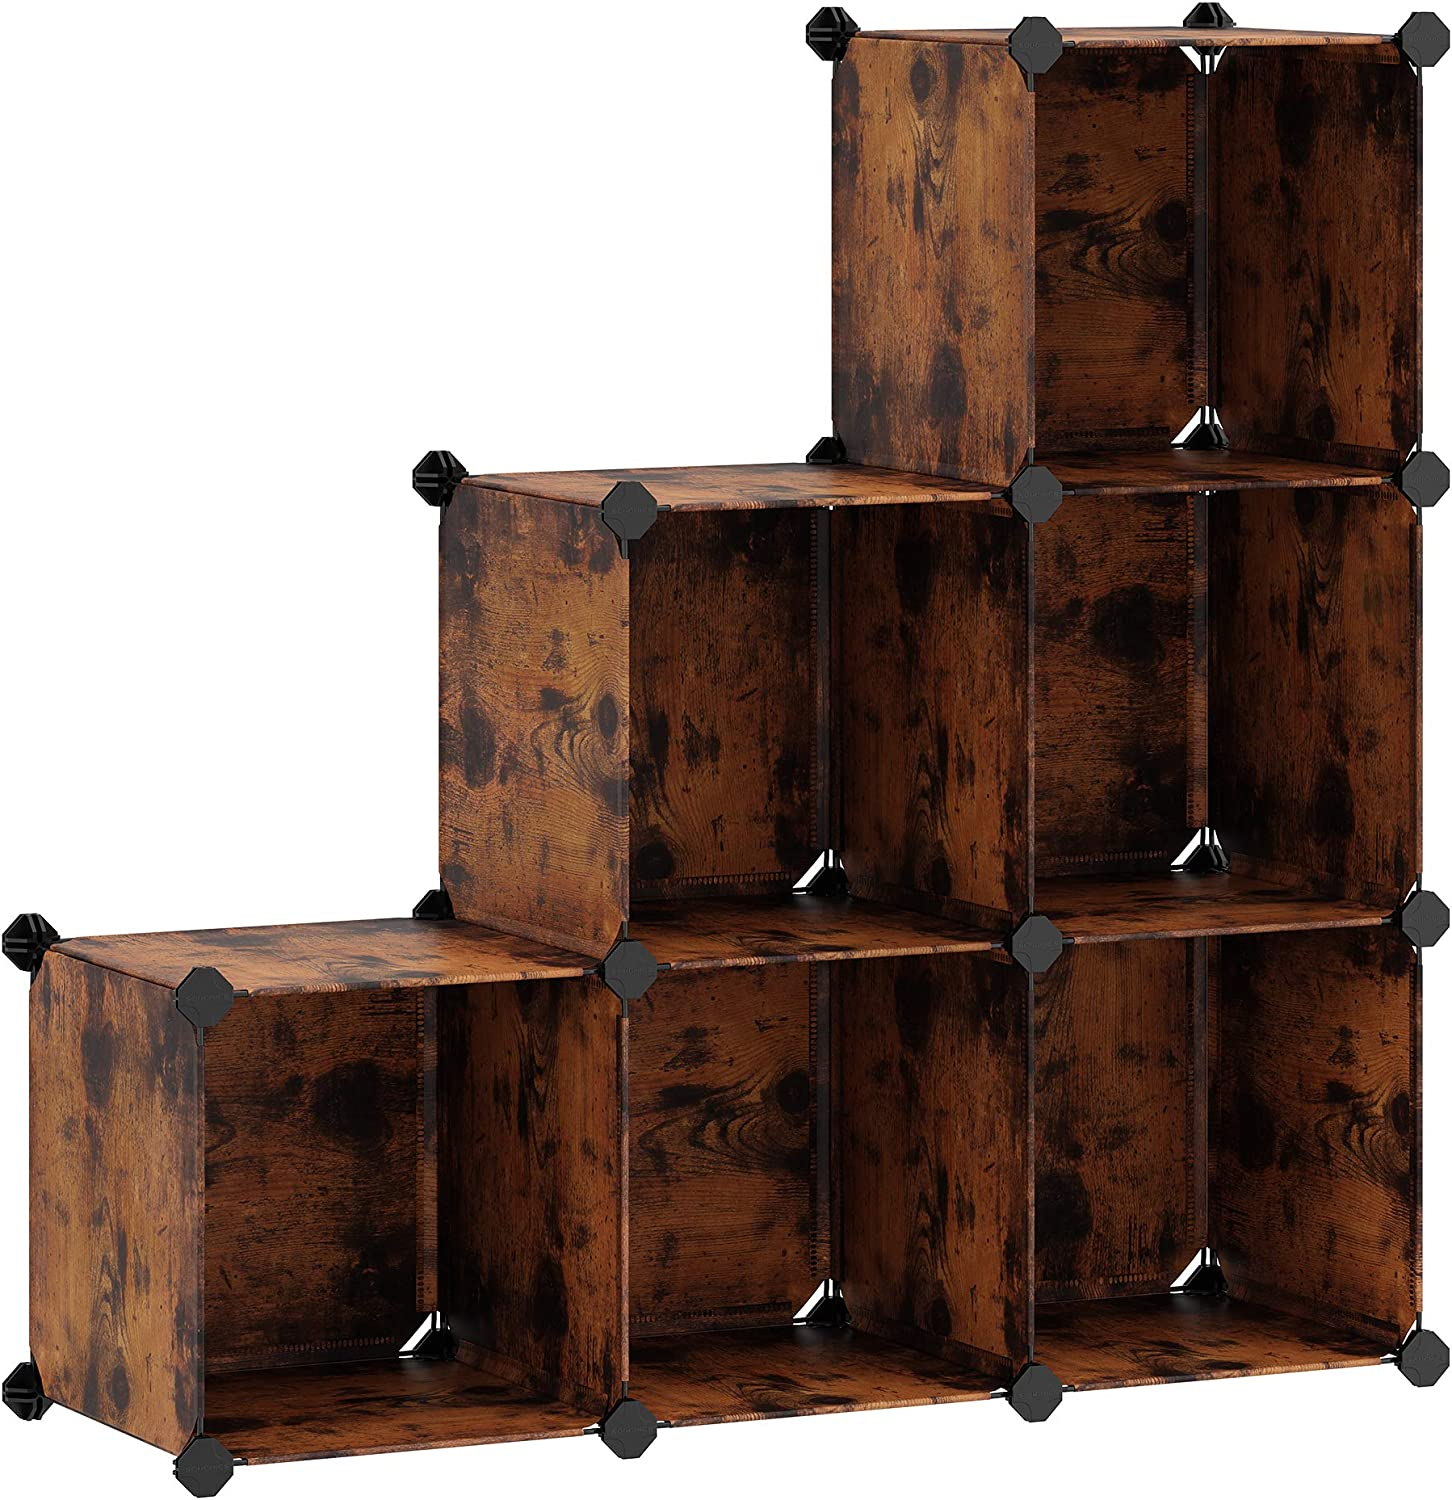 SONGMICS Cube Storage Organizer, 6-Cube Closet Storage Shelves, DIY Plastic Closet Cabinet, Modular Bookcase, Storage Shelving for Bedroom, Living Room, Office, with Mallet, Rustic Brown ULPC111A01